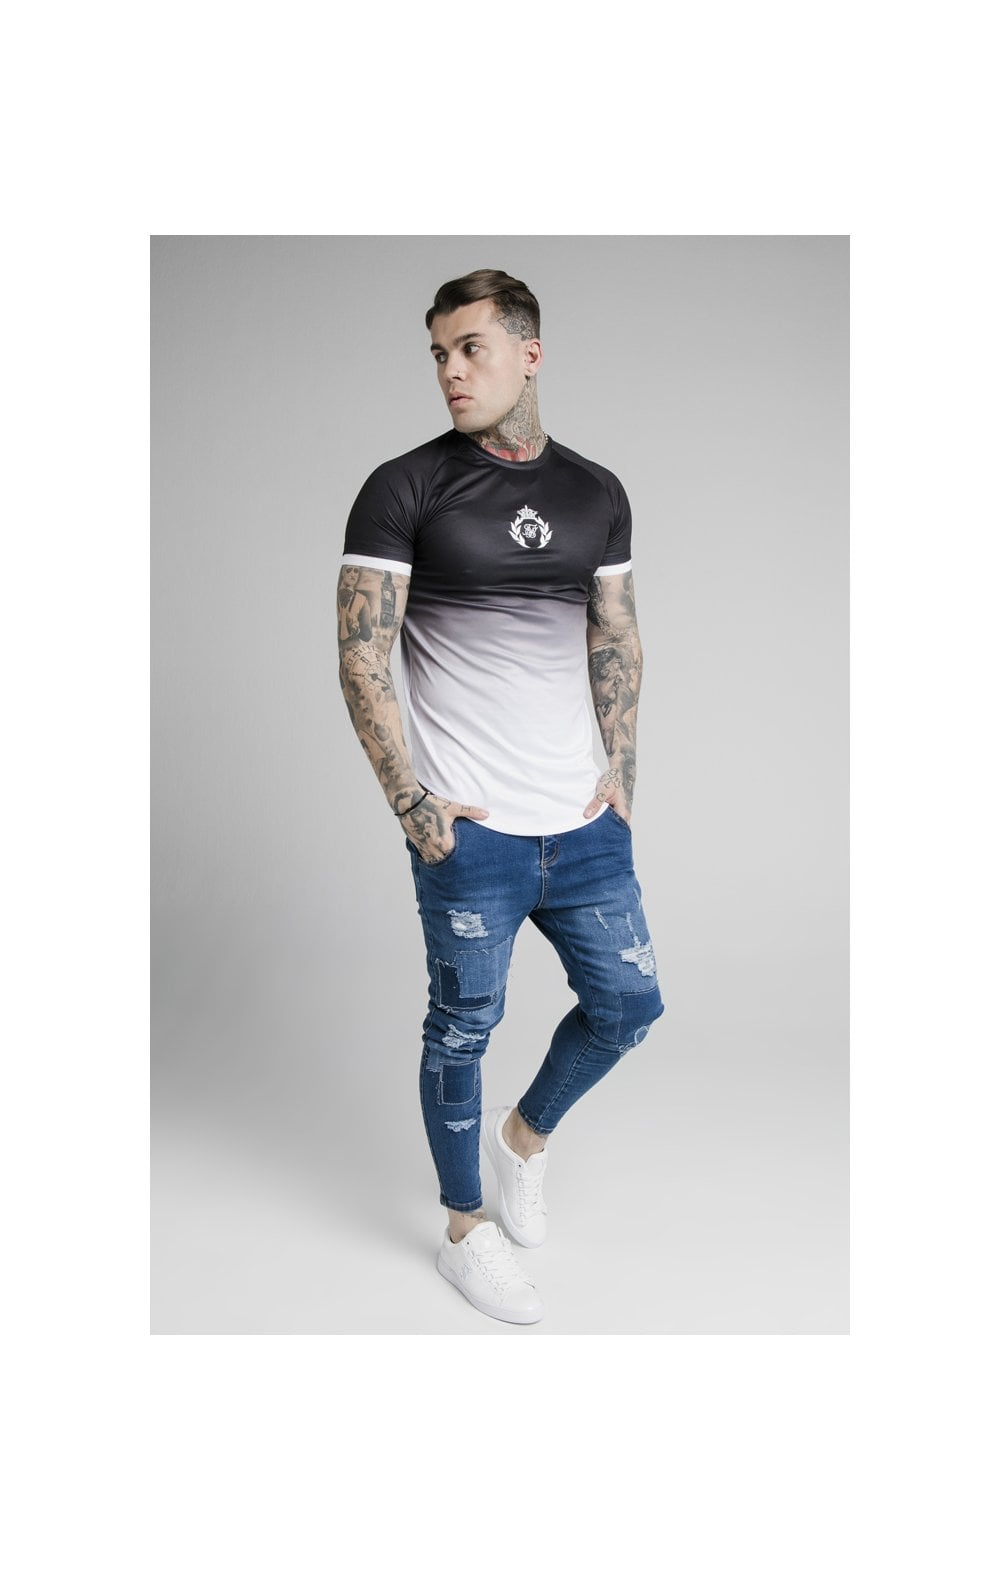 Load image into Gallery viewer, SikSilk S/S Prestige Fade Inset Tech Tee - Black & White (2)